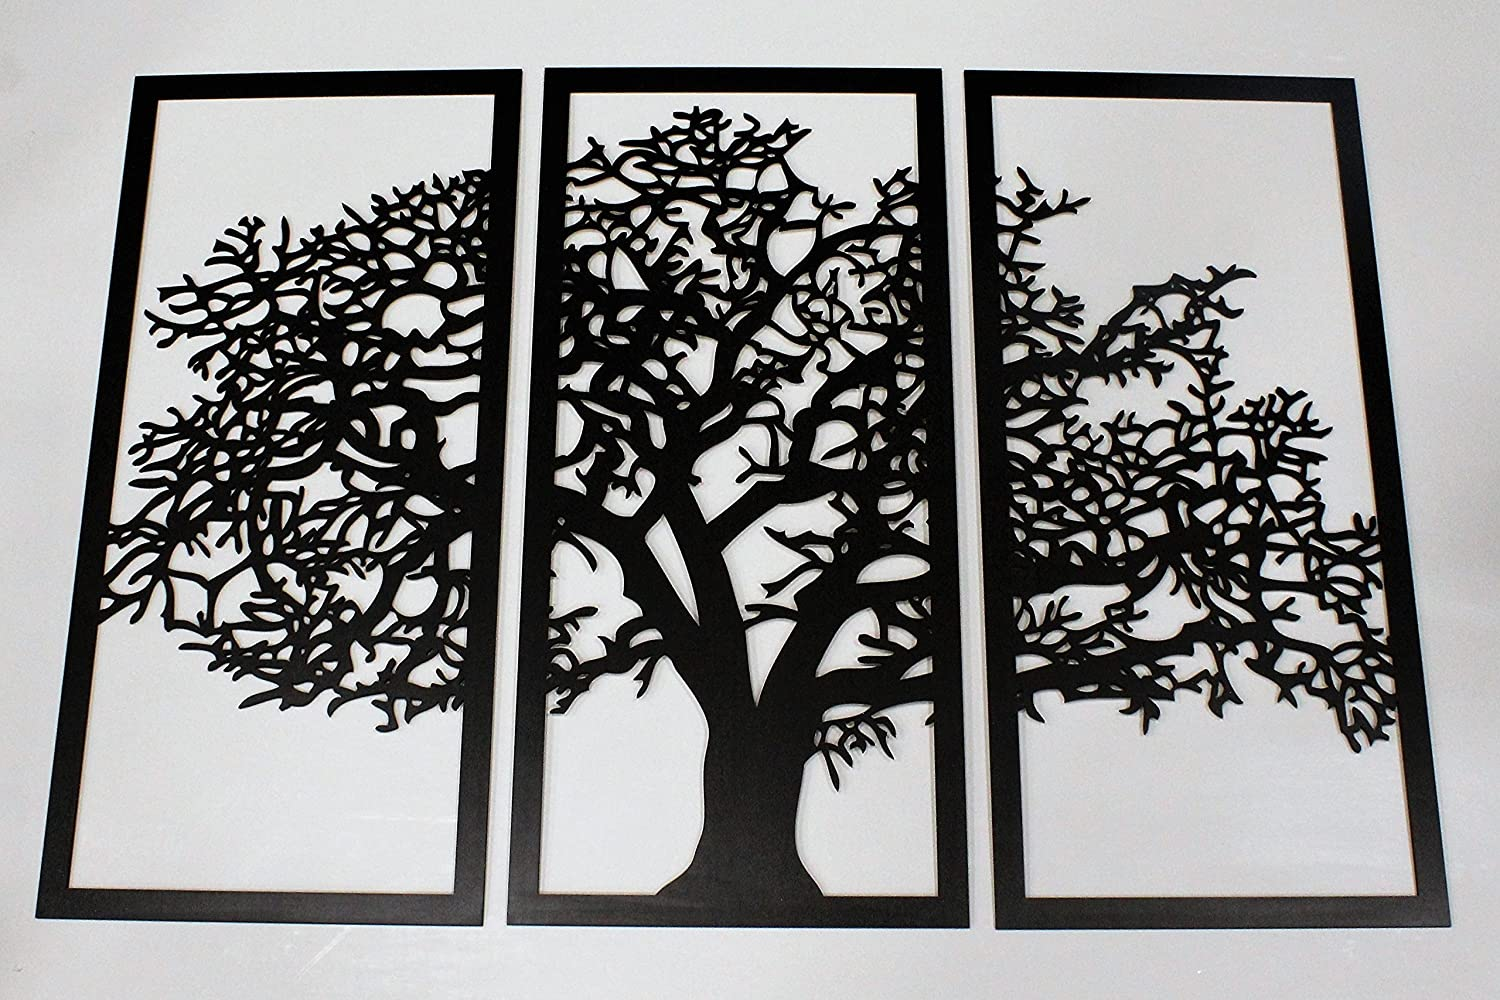 Skyline Workshop Tree of Life Ebony - 3 Panel Wood Wall Art - Beautiful Living Room Decor - Stunning Modern Art - Made in The USA